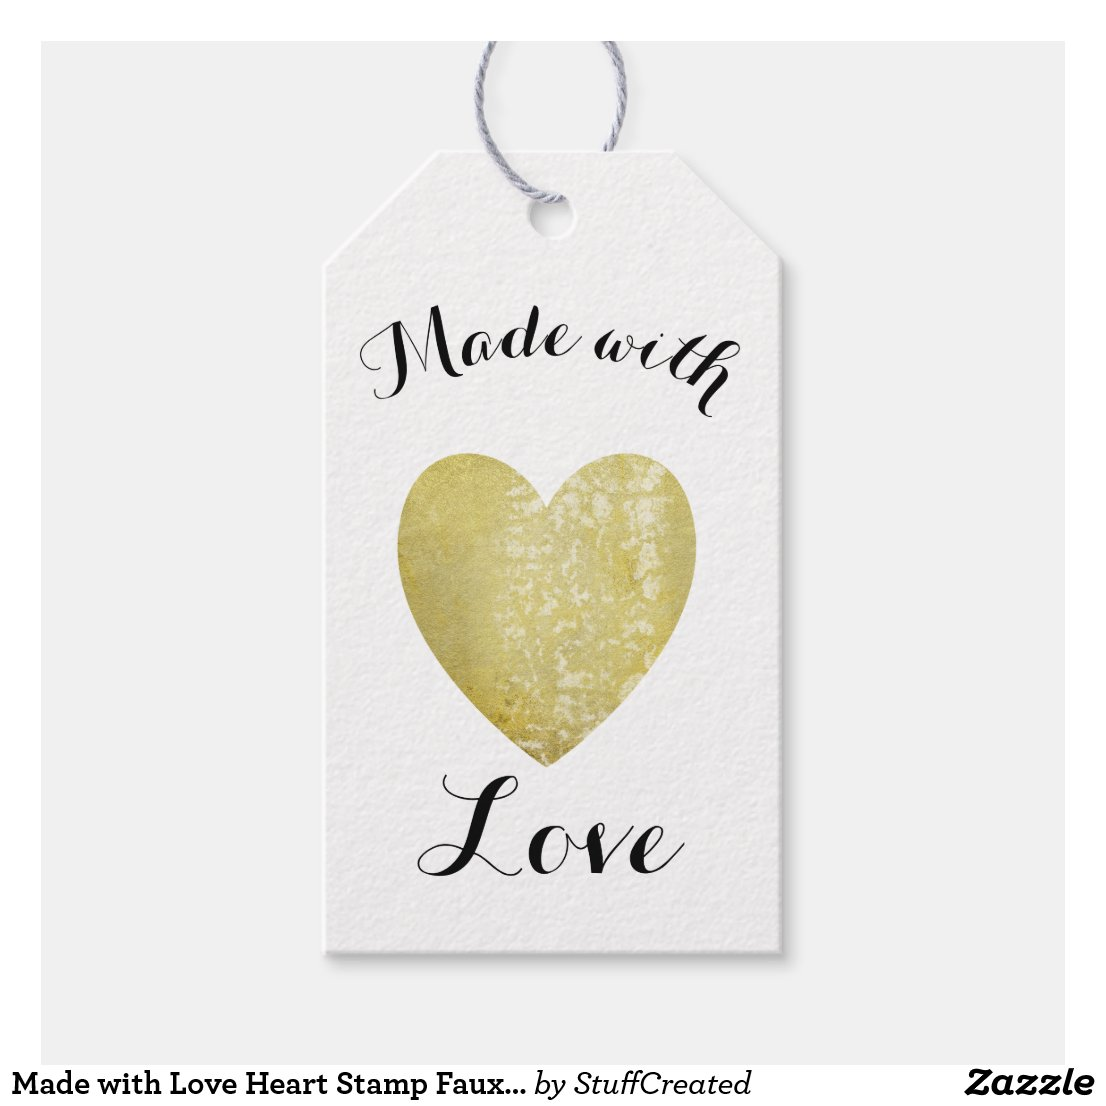 Made with Love Heart Stamp Faux Gold Foil Gift Tags